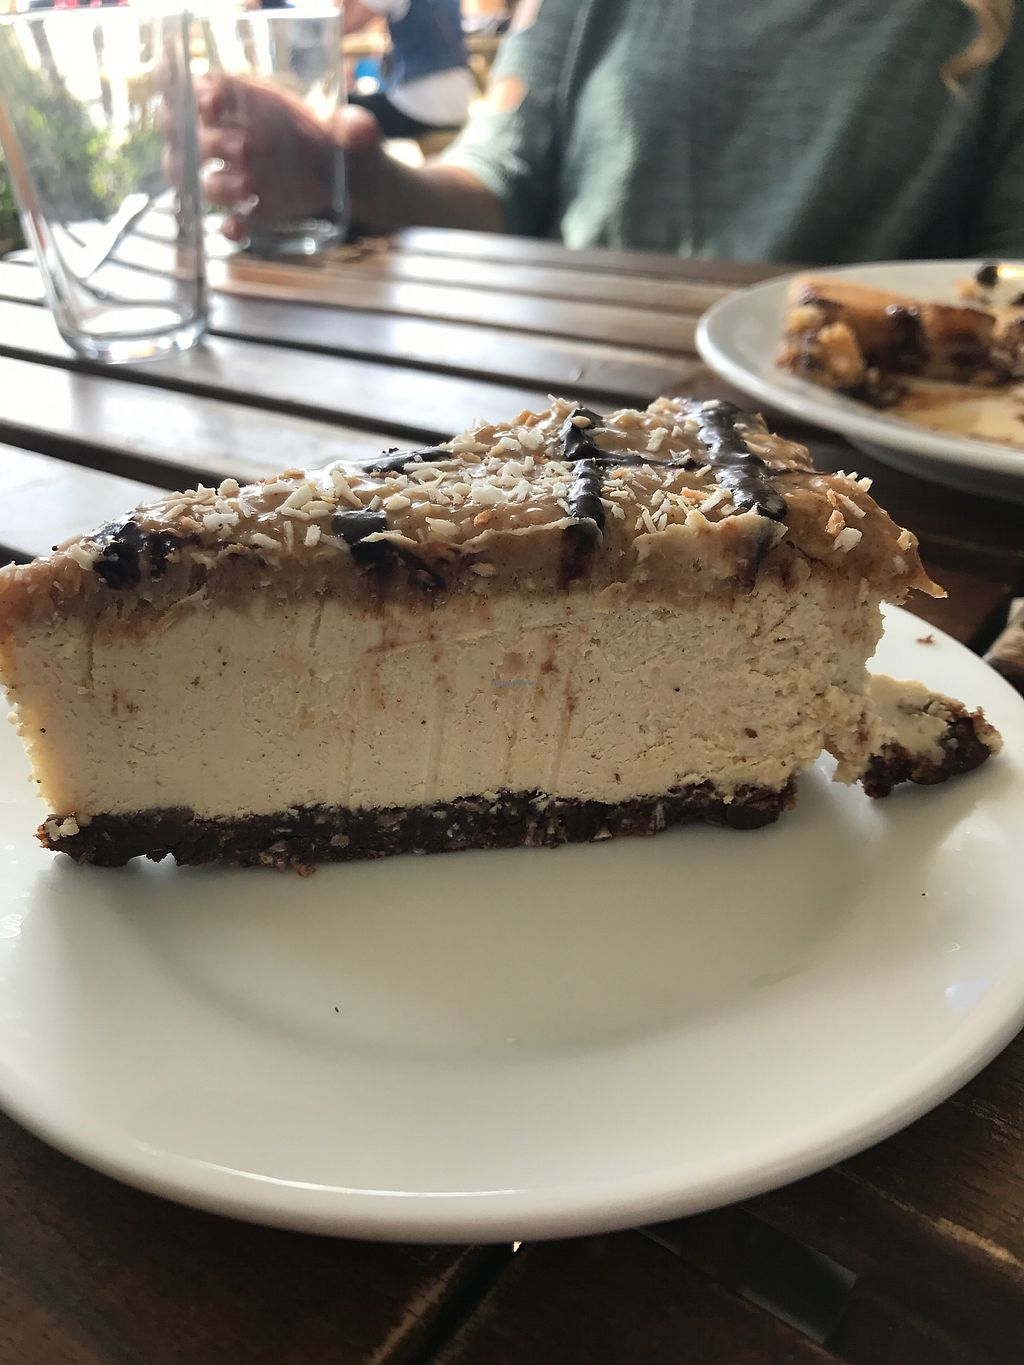 """Photo of Love Food Central  by <a href=""""/members/profile/GenChandy"""">GenChandy</a> <br/>Vegan Cheesecake  <br/> October 30, 2017  - <a href='/contact/abuse/image/69177/320136'>Report</a>"""